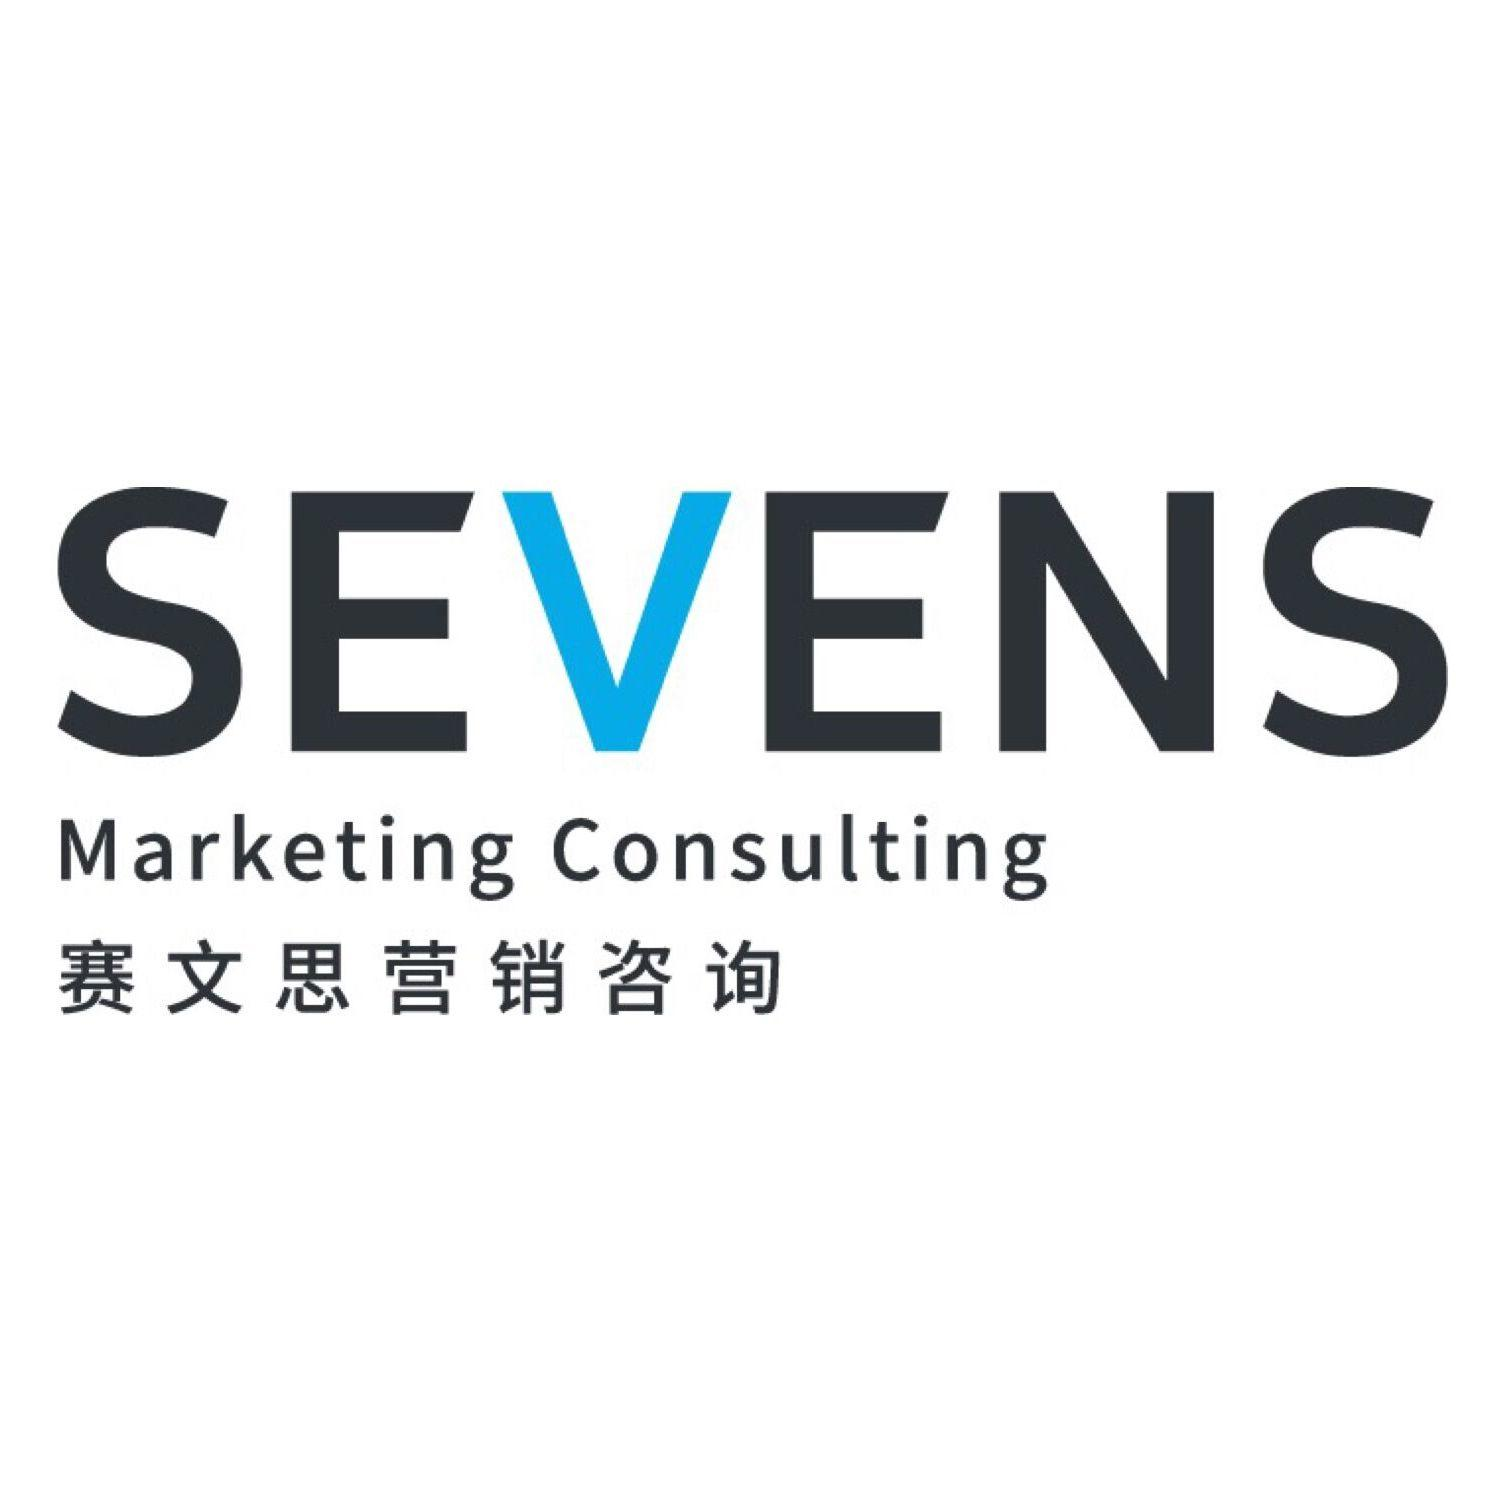 THE SEVENS MARKETING CONSULTING LIMITED